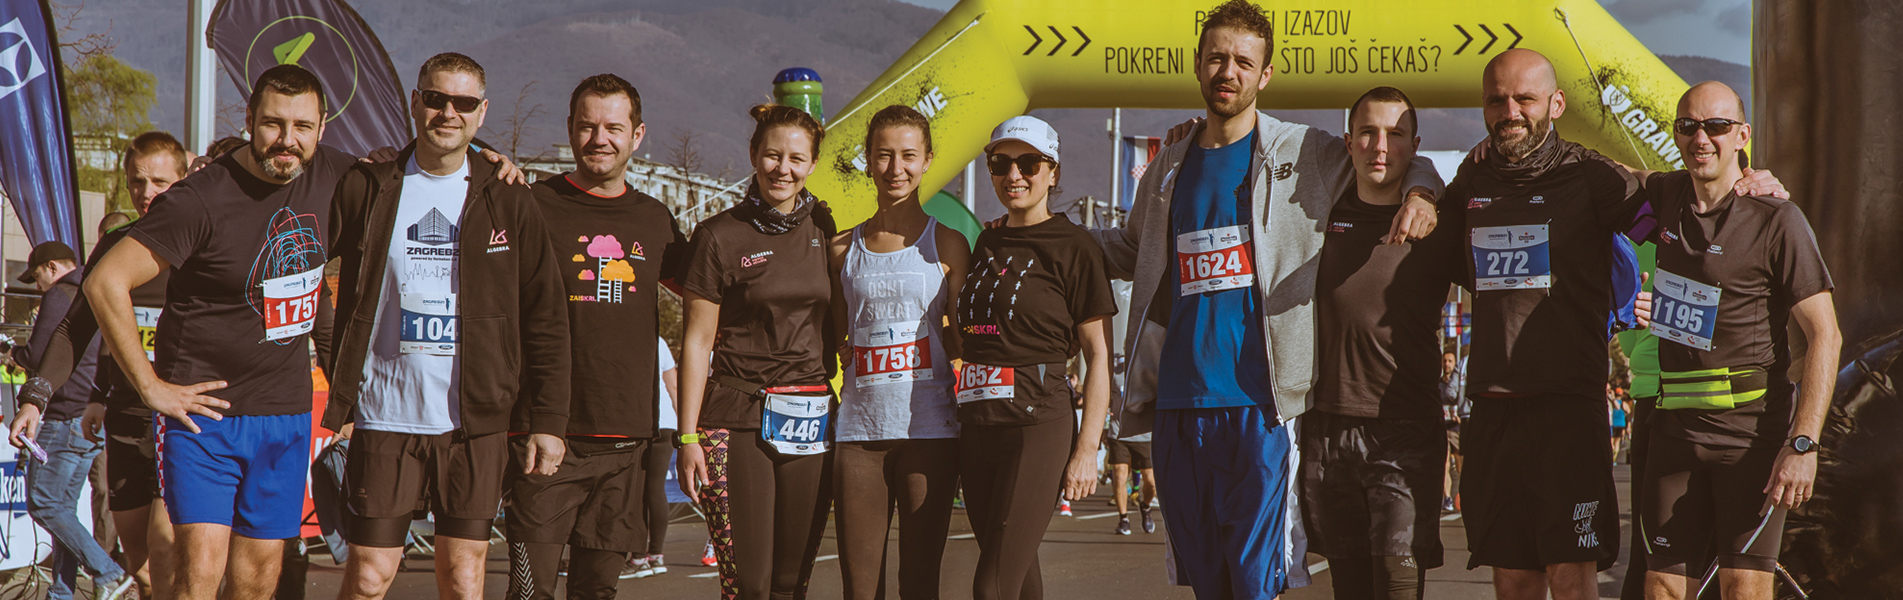 Image for Algebra Running team na utrci ZAGREB21